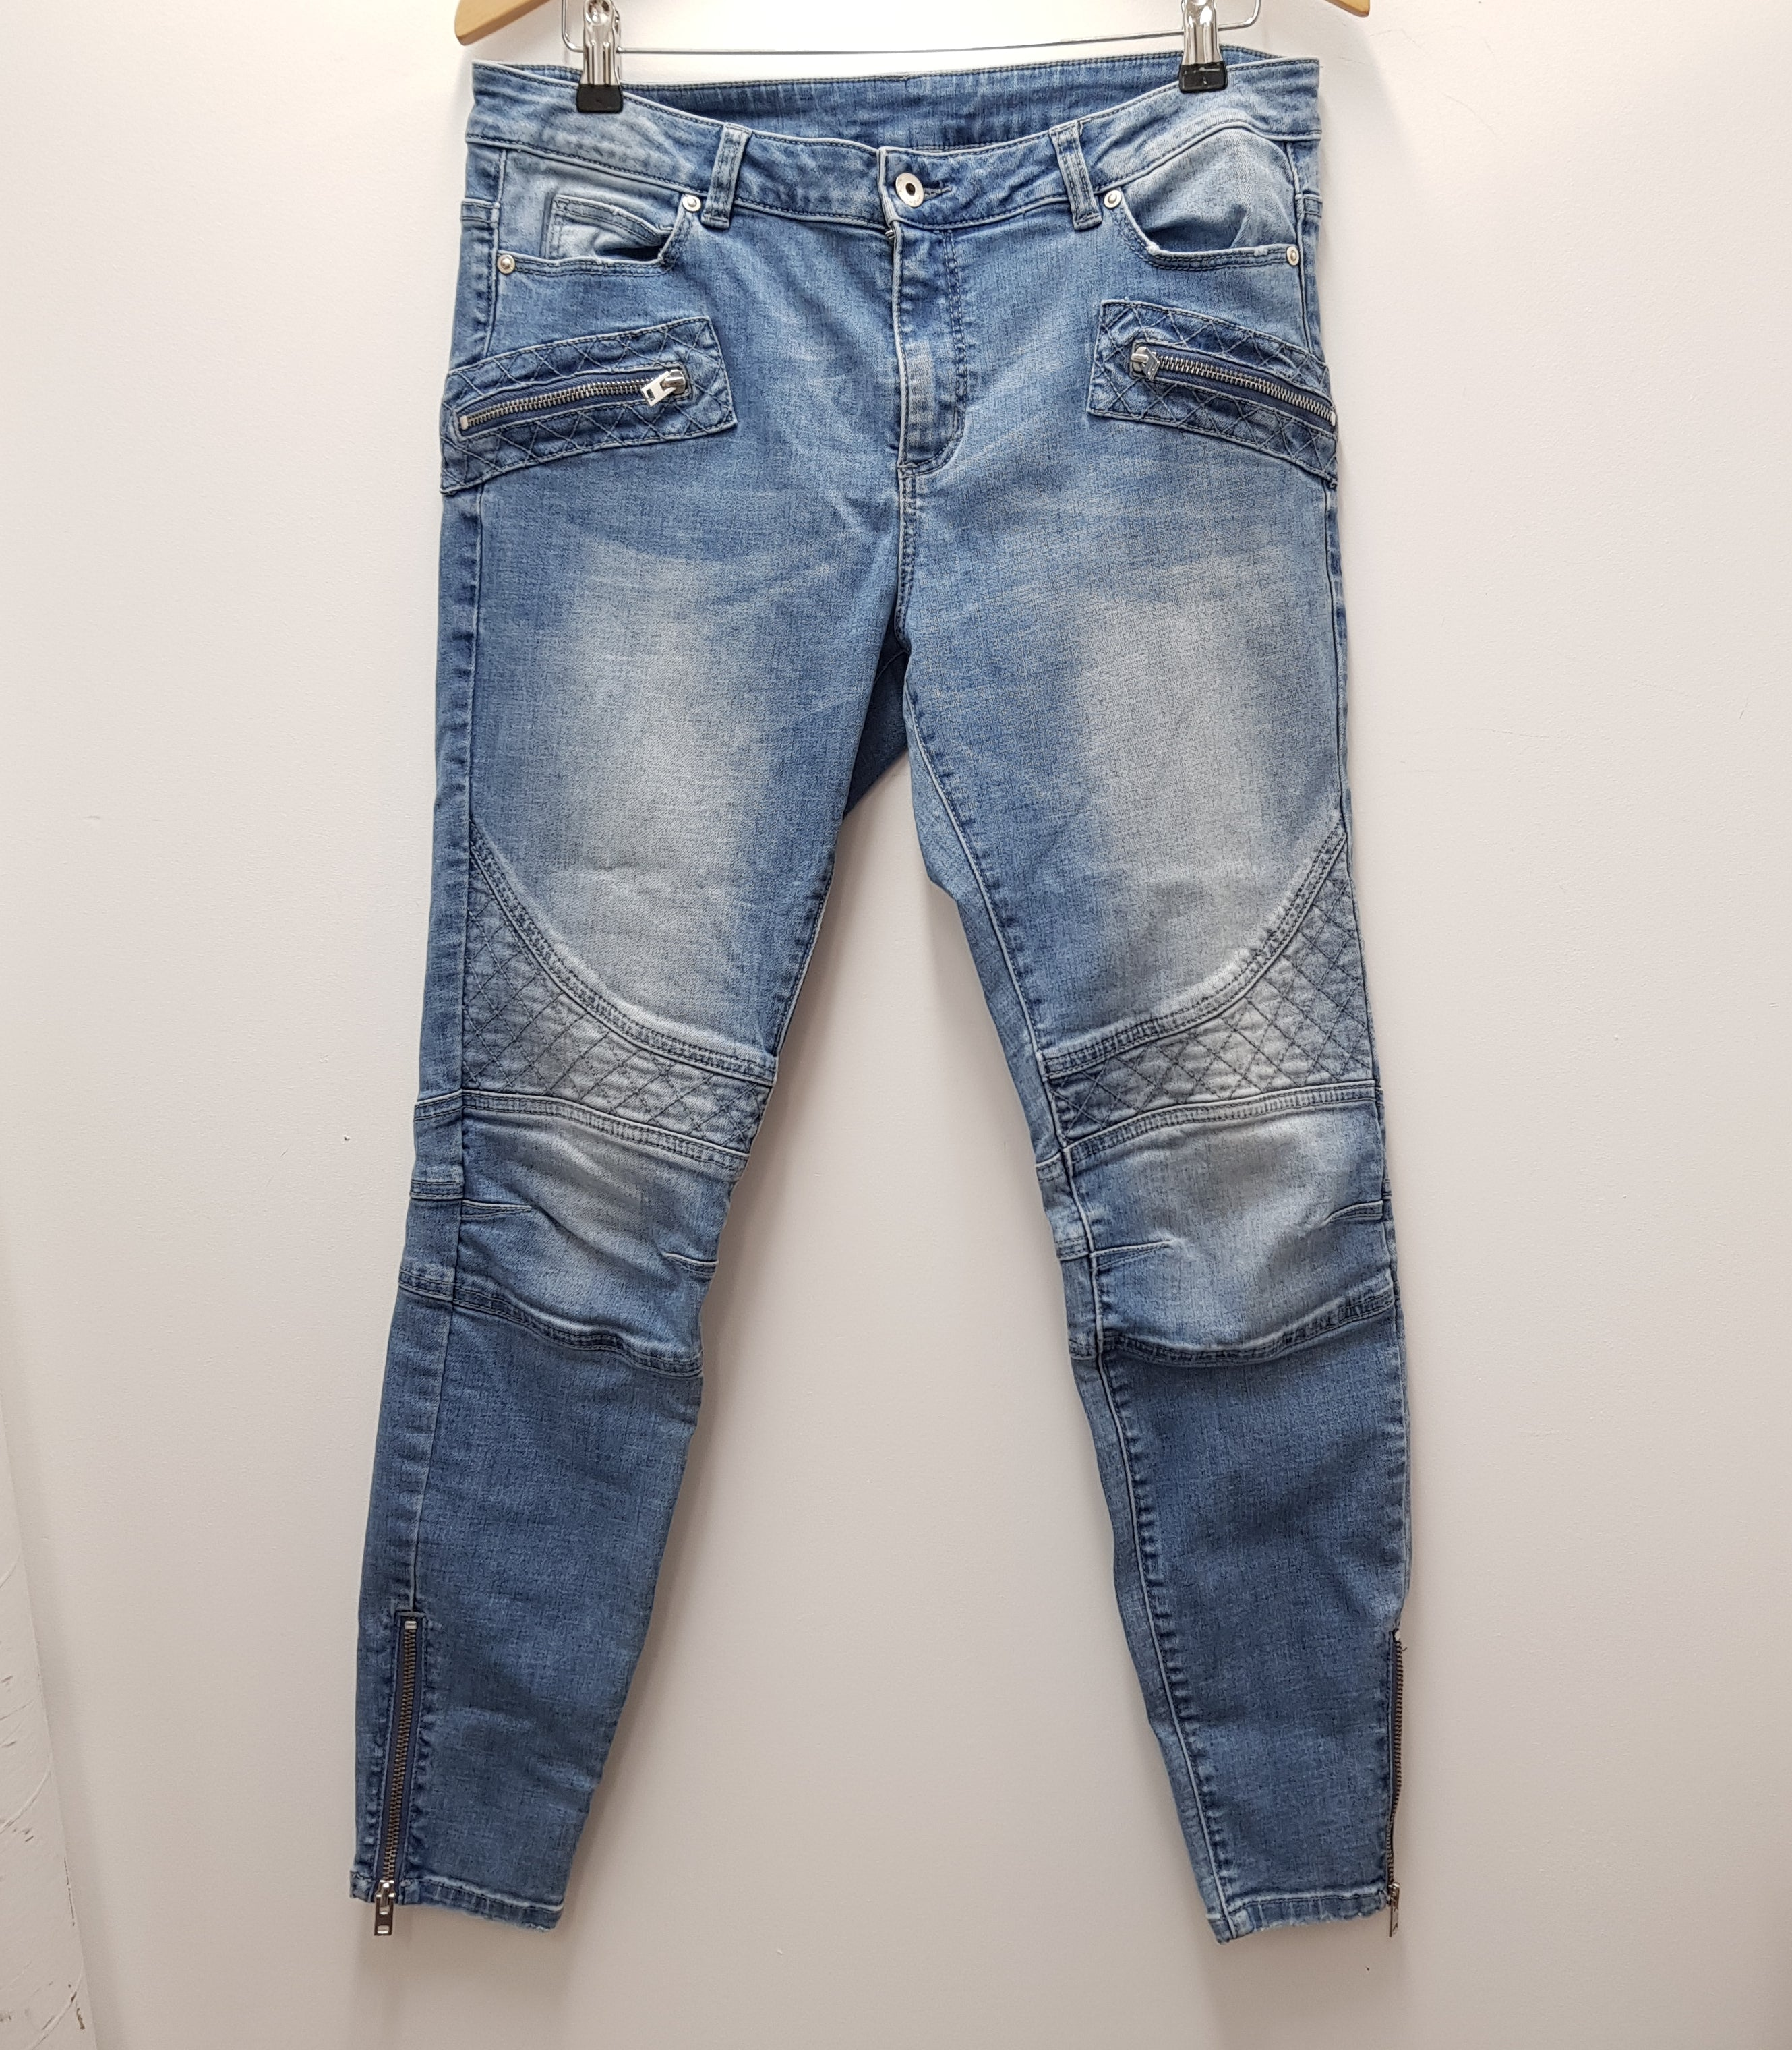 WITCHERY - Jeans - PRELOVED